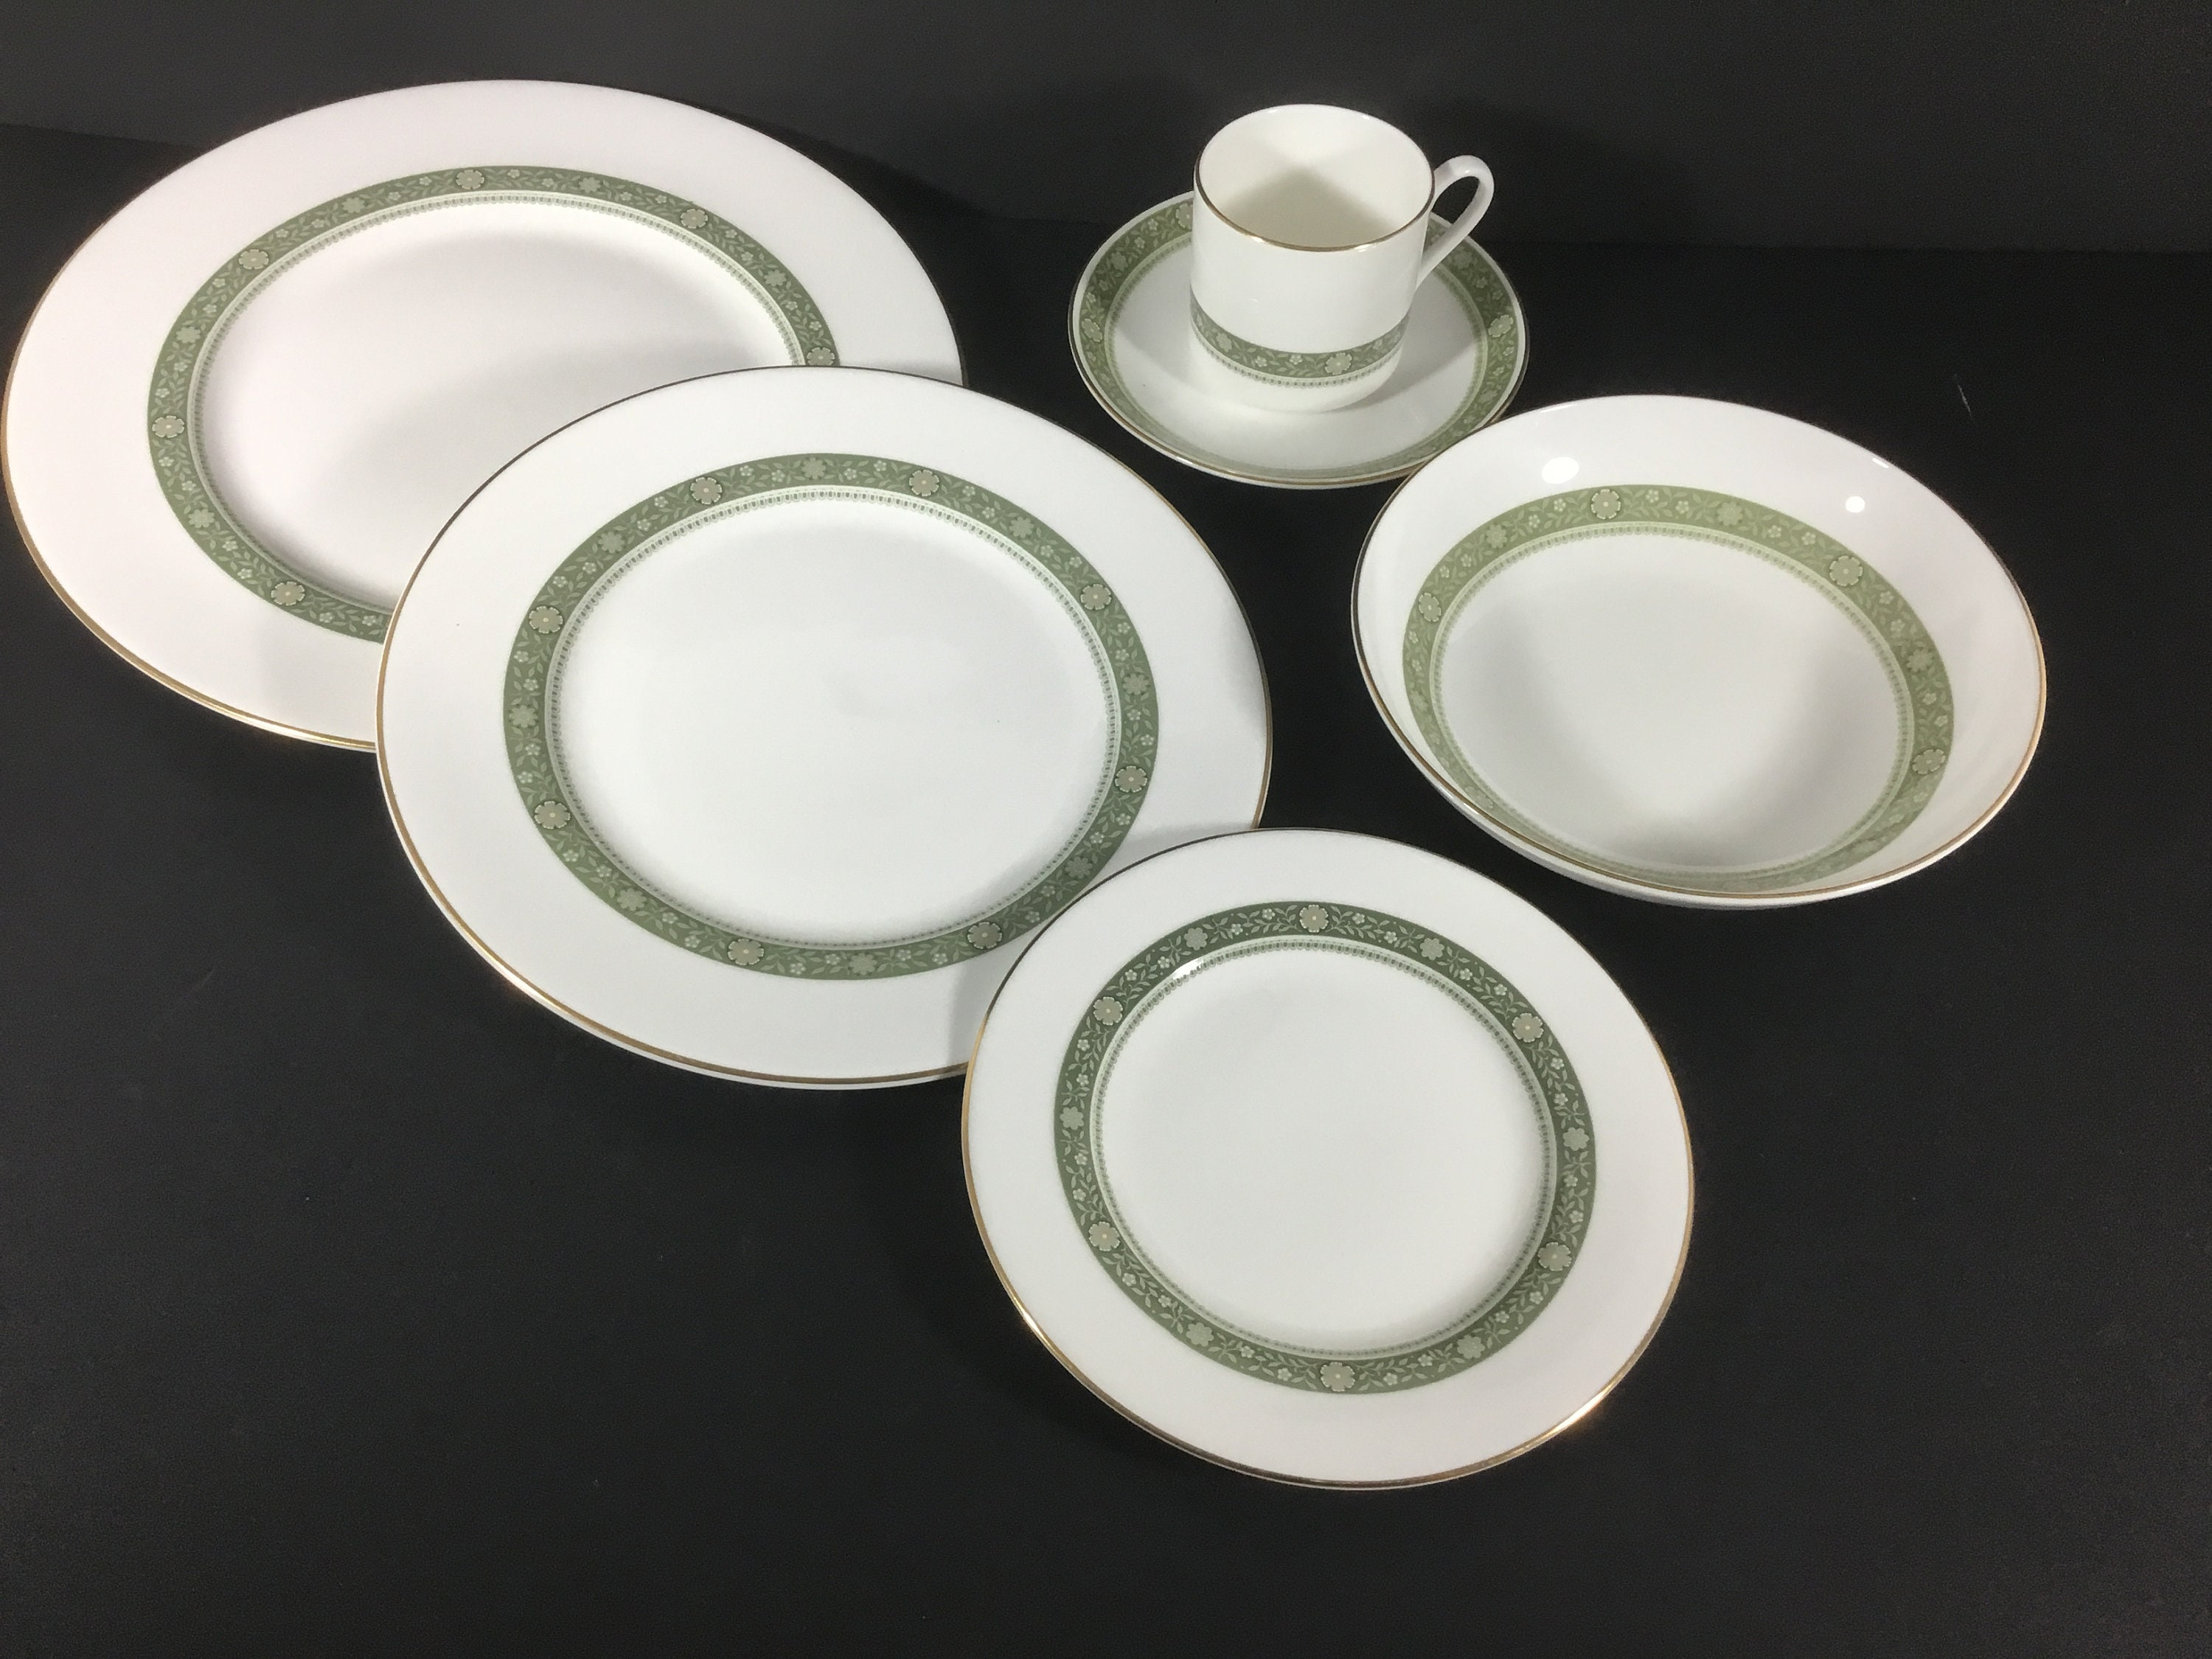 58eaa6aa1e34a 39 Piece Dinner Set for 6 People Royal Doulton Rondelay H5004